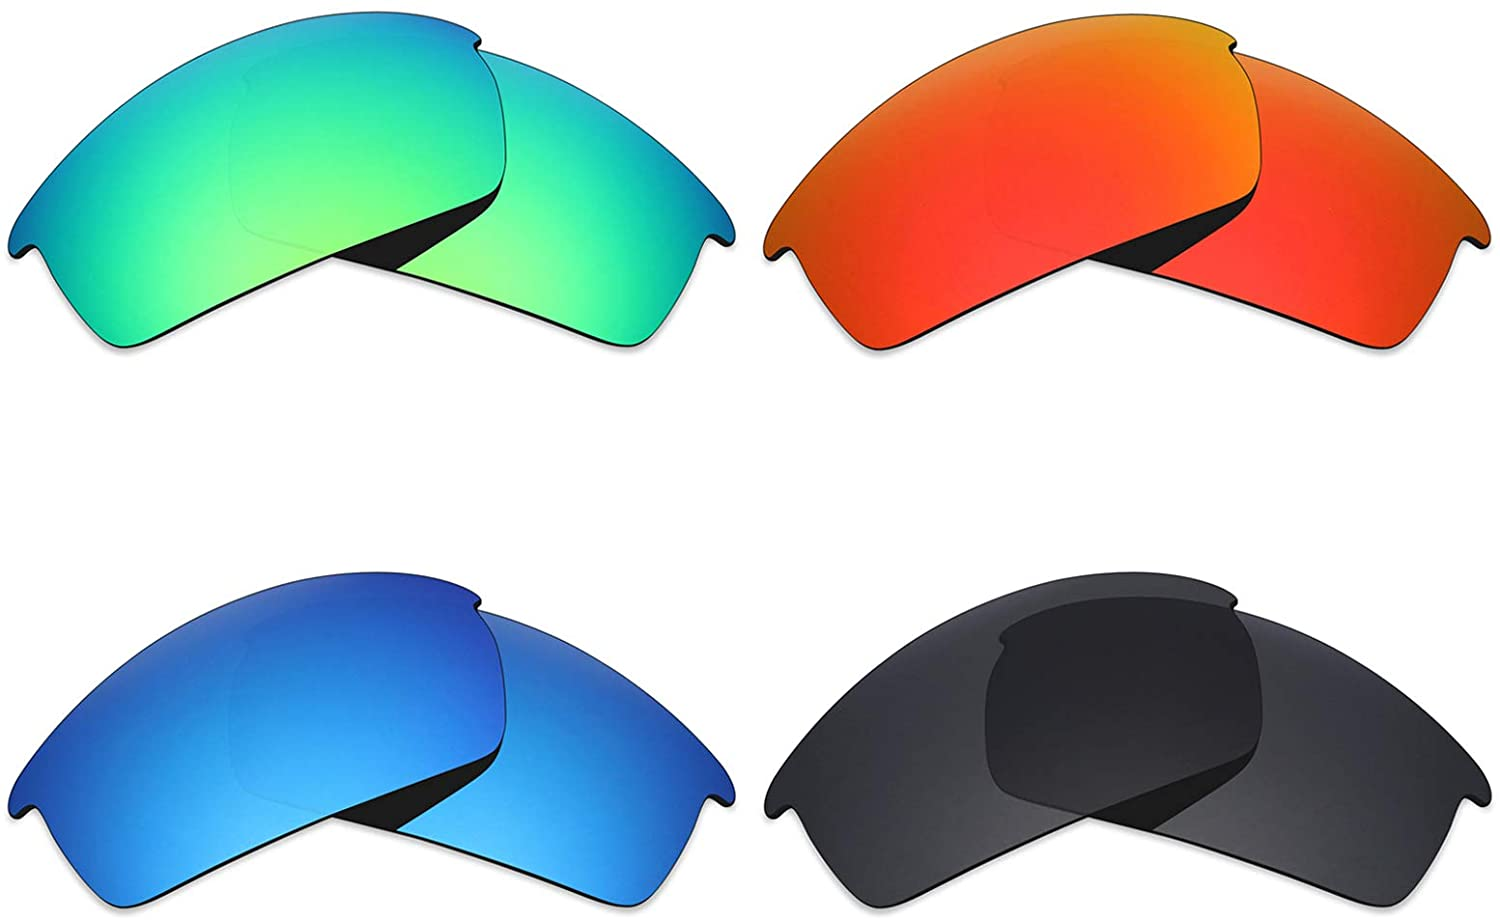 Mryok 4 Pair Polarized Replacement Lenses for Oakley Bottlecap Sunglass - Stealth Black/Fire Red/Ice Blue/Emerald Green